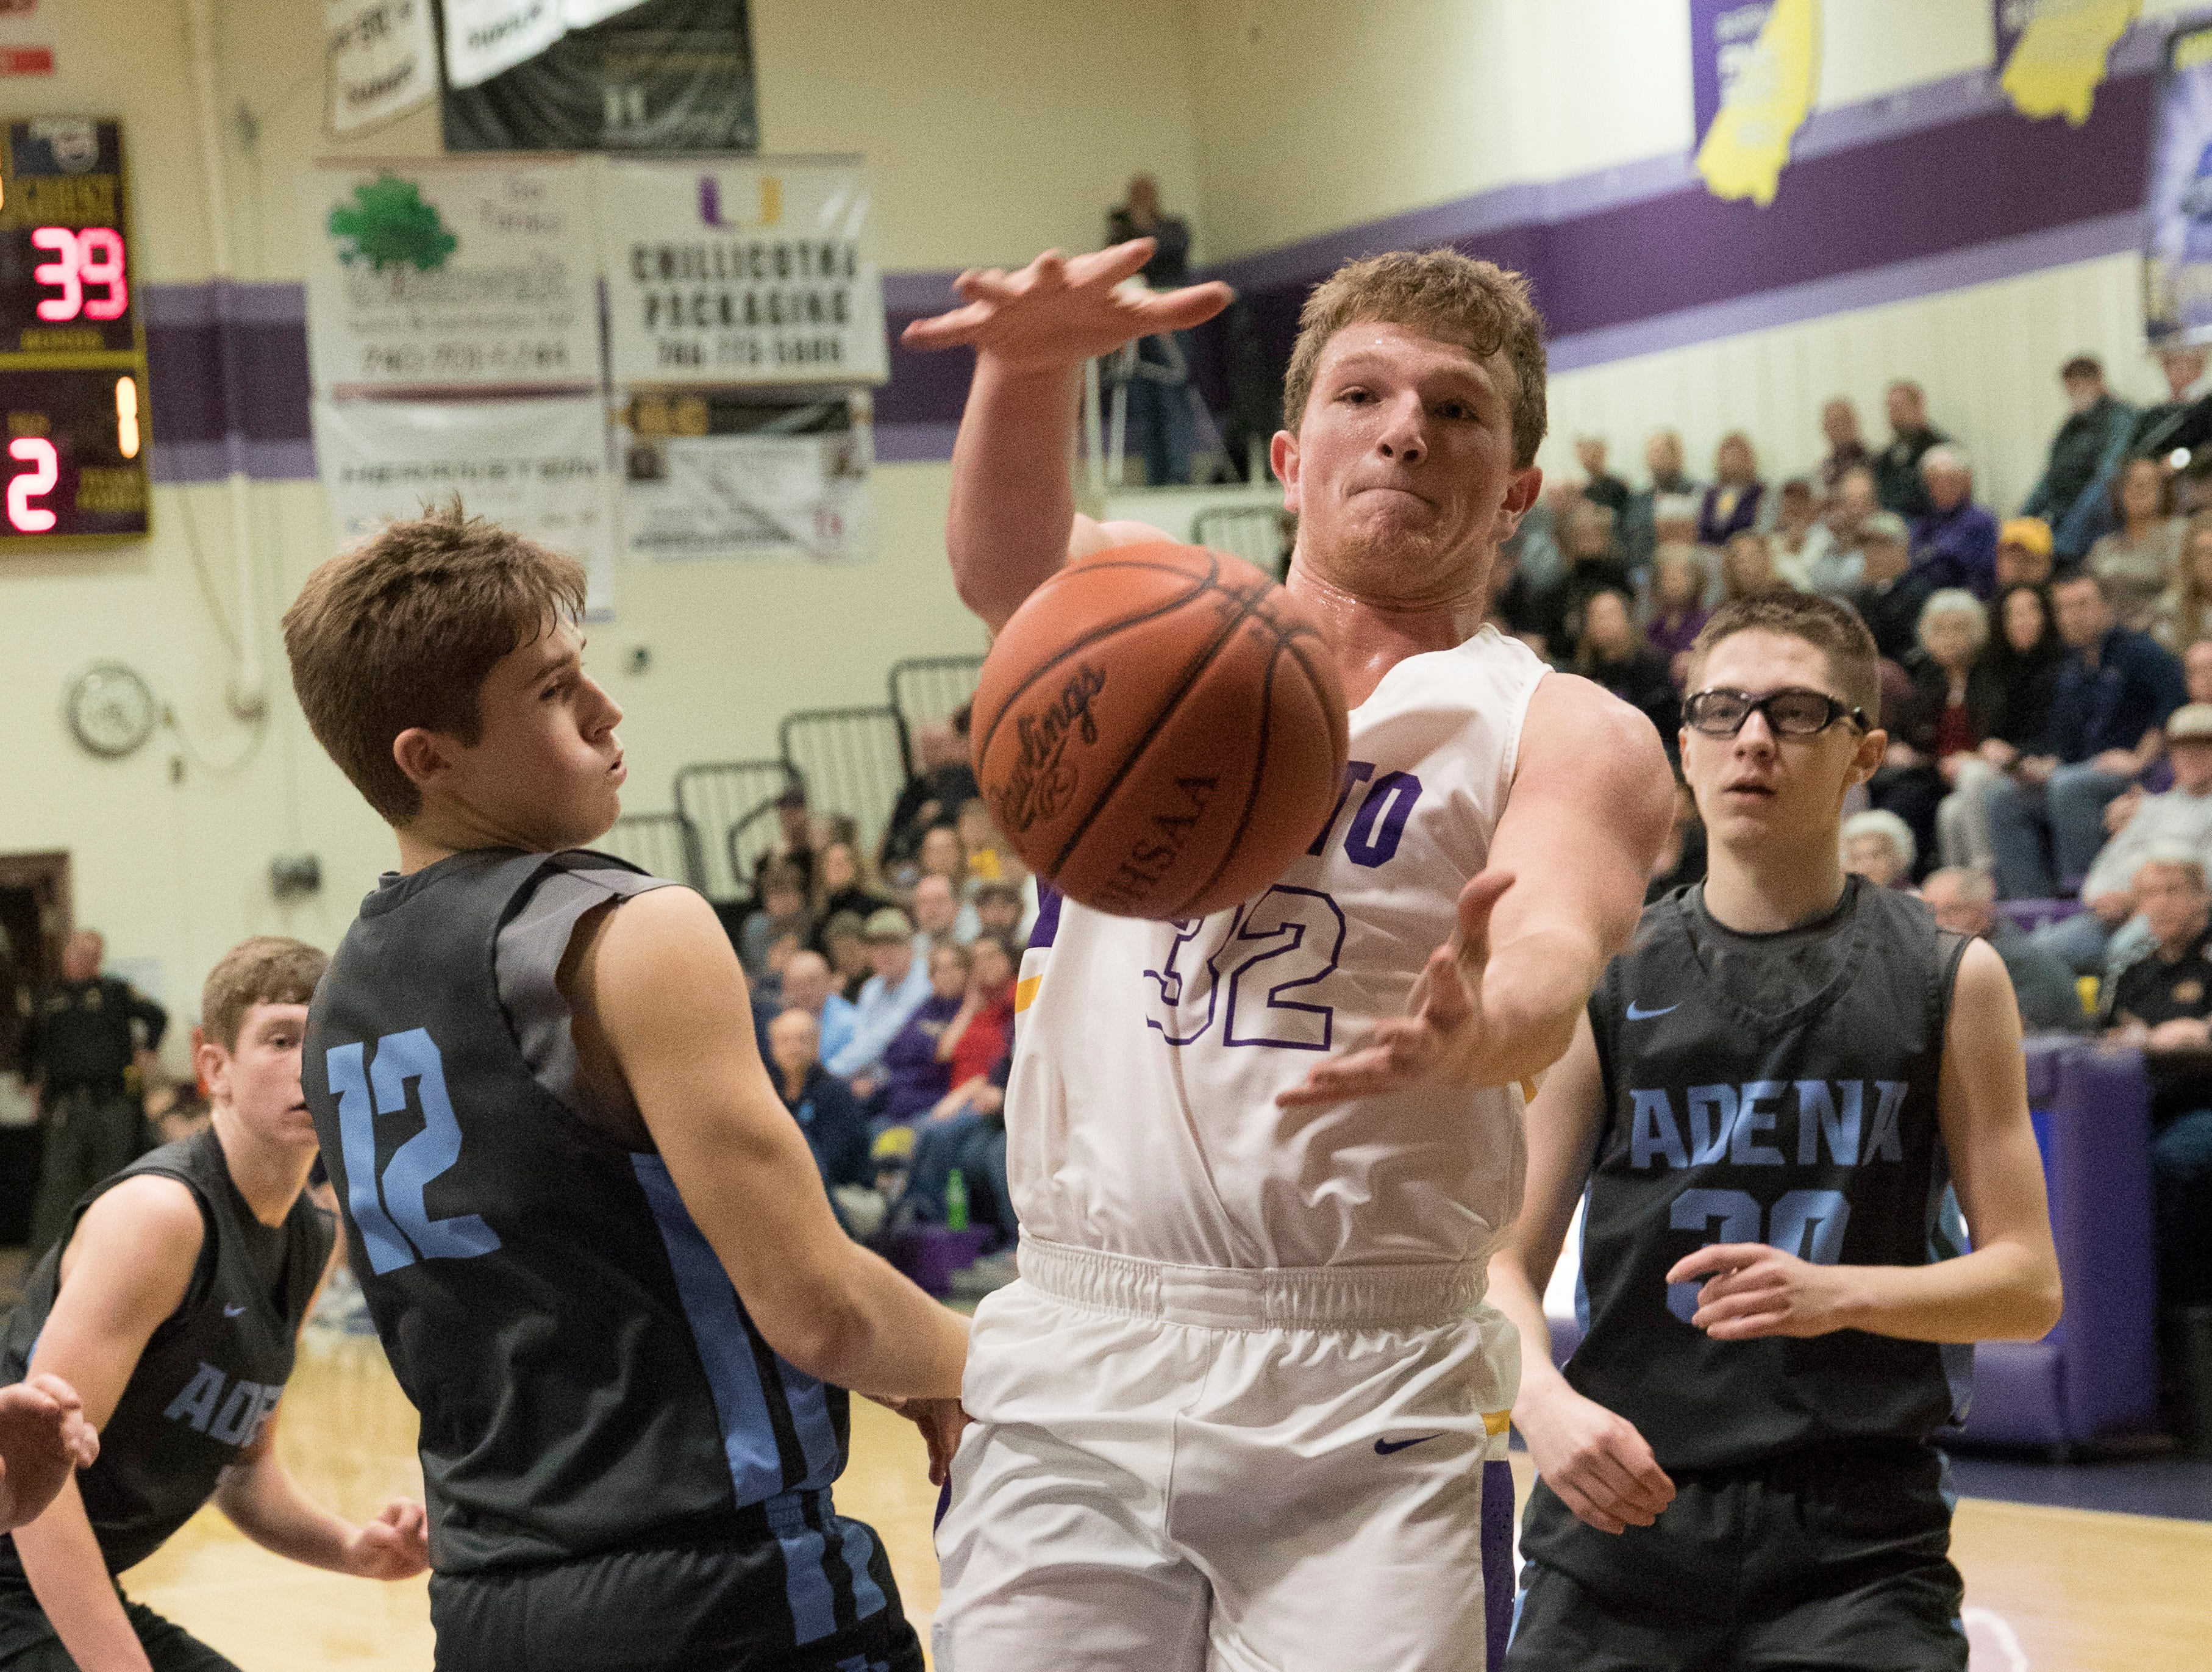 Unioto senior Chance Smith attempts to grab the ball to keep it in play during a heated game against Adena Saturday night in Chillicothe, Ohio, giving Adena its sixth SVC win.